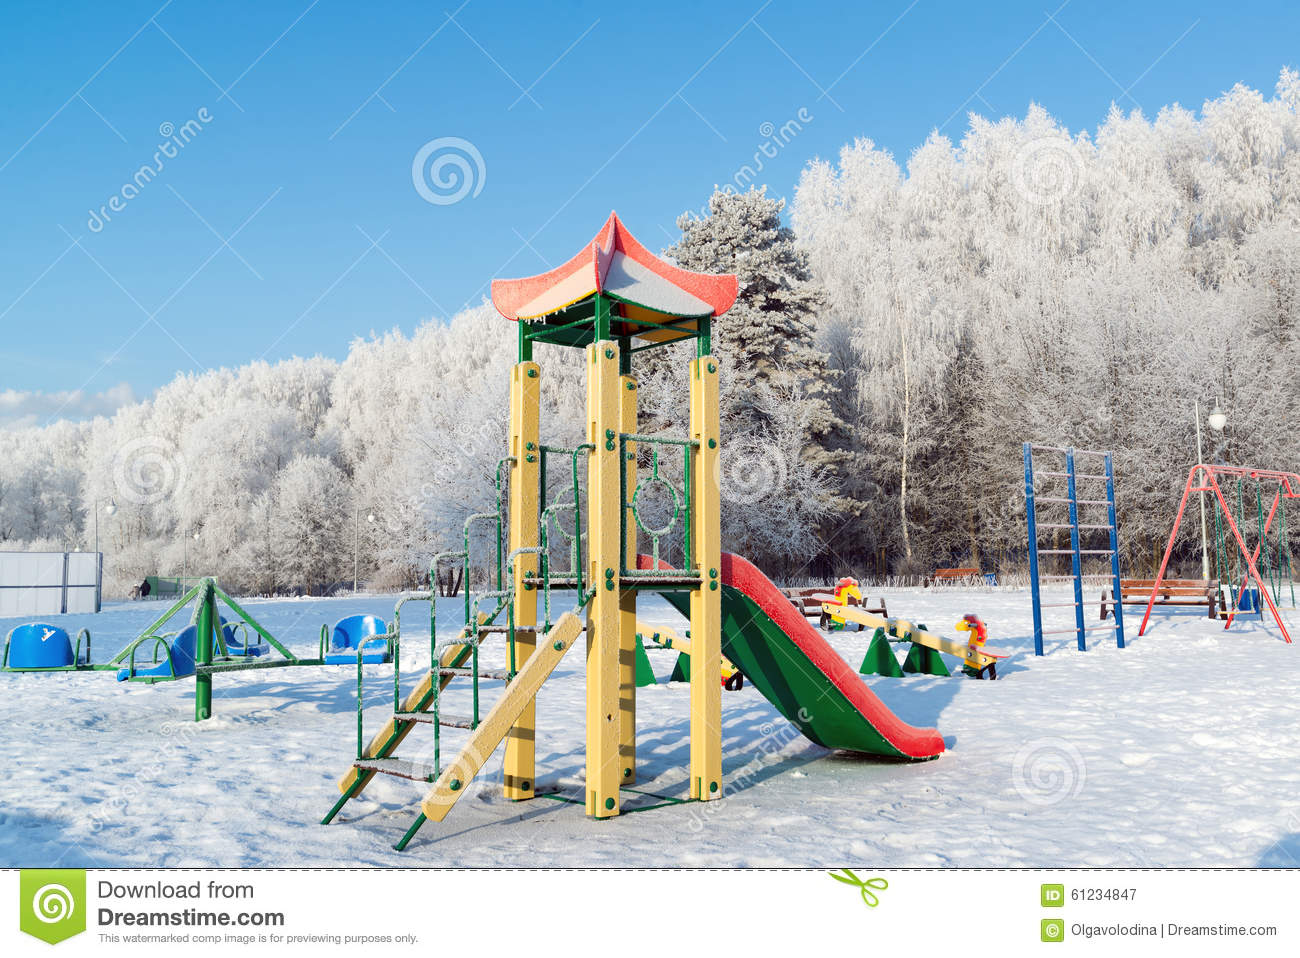 Rutsche Clipart Playground Structure Outdoors In Winter Stock Photo